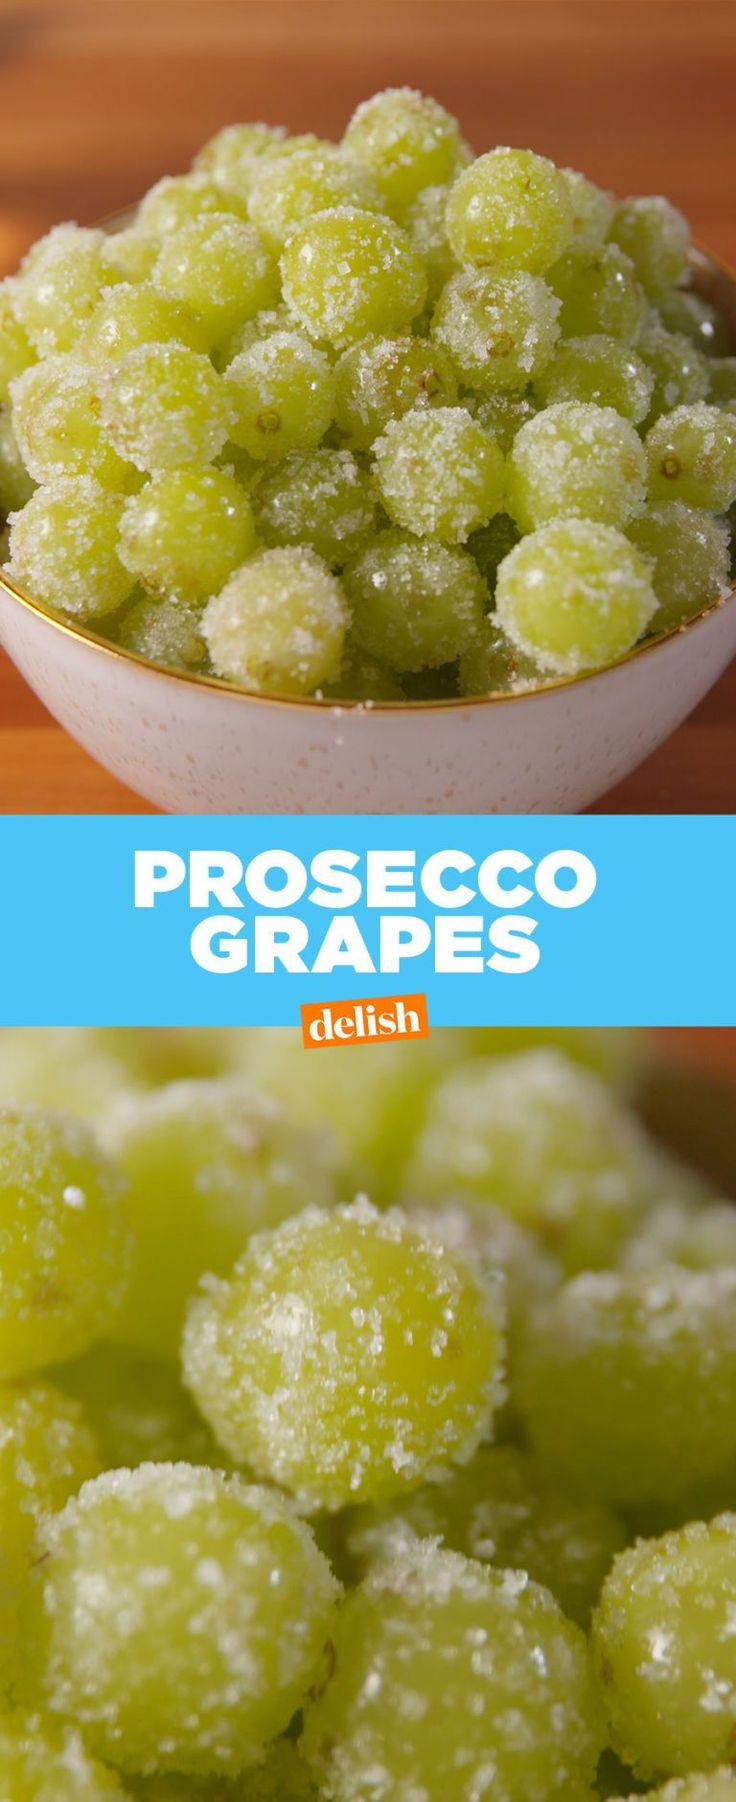 Prosecco Grapes 2 lb. green grapes 1 bottle prosecco 1/2 c. sugar In a large bowl, pour prosecco OR Gingerale OR water over grapes. Let them soak in the fridge for at least 1 hour, unless using water than can use right away.. Drain in a colander and pat dry. On a shallow plate, roll the grapes in sugar until fully coated, then serve.